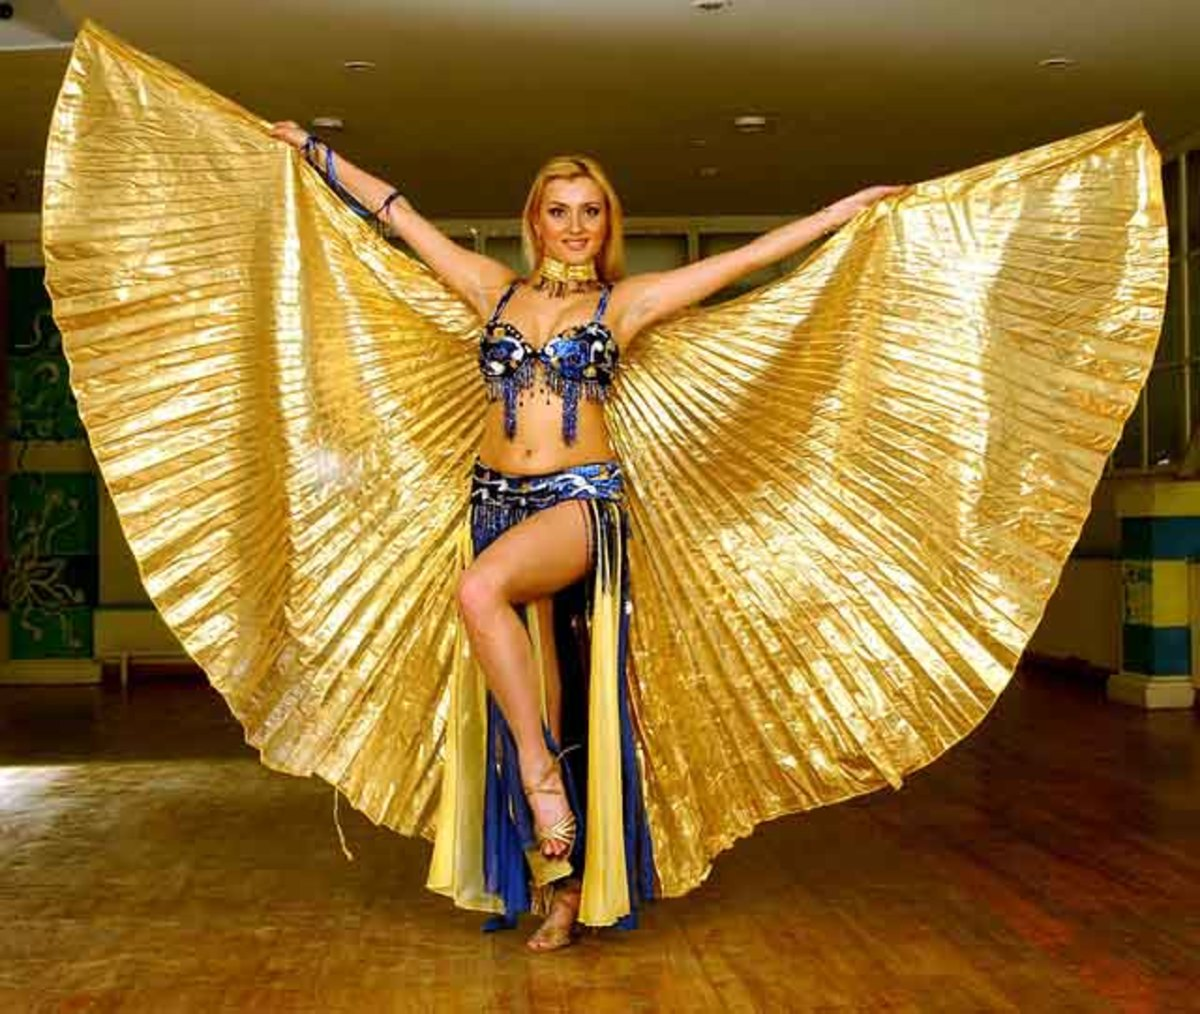 An Egyptian style dancer performing with Isis Wings constructed from lame fabric.